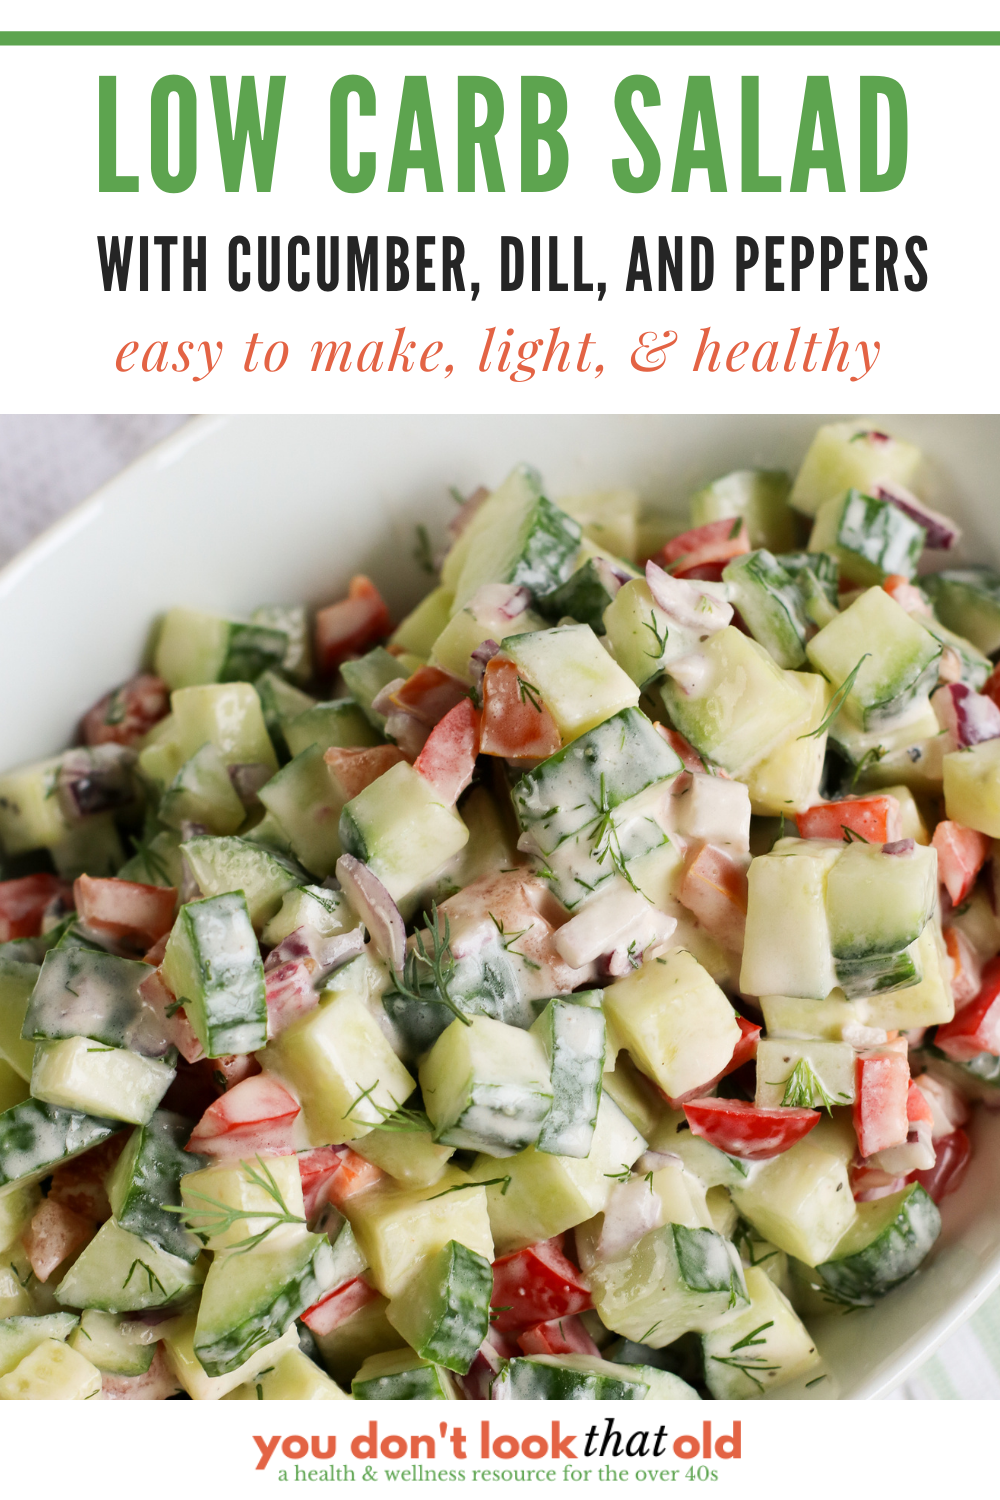 Easy to make, light, and healthy low carb garden salad with cucumbers, peppers, and dill.